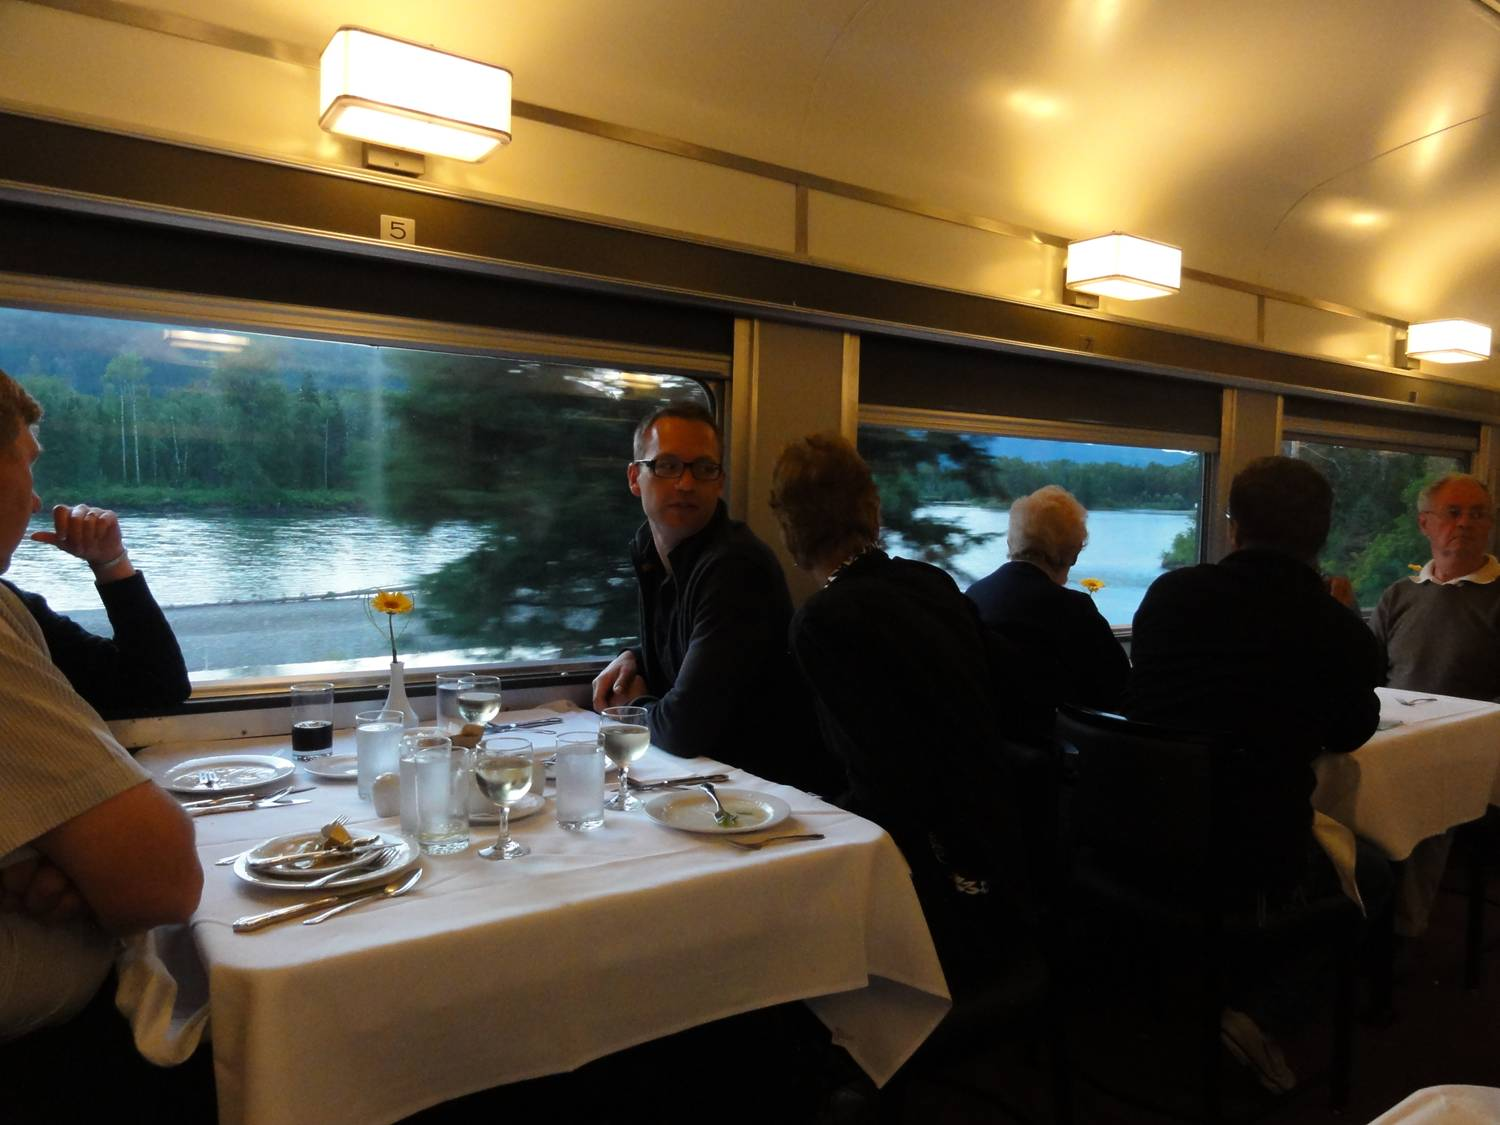 Picture:  Breakfast in the dining car at dawn.  Via rail is a great way to see Canada.